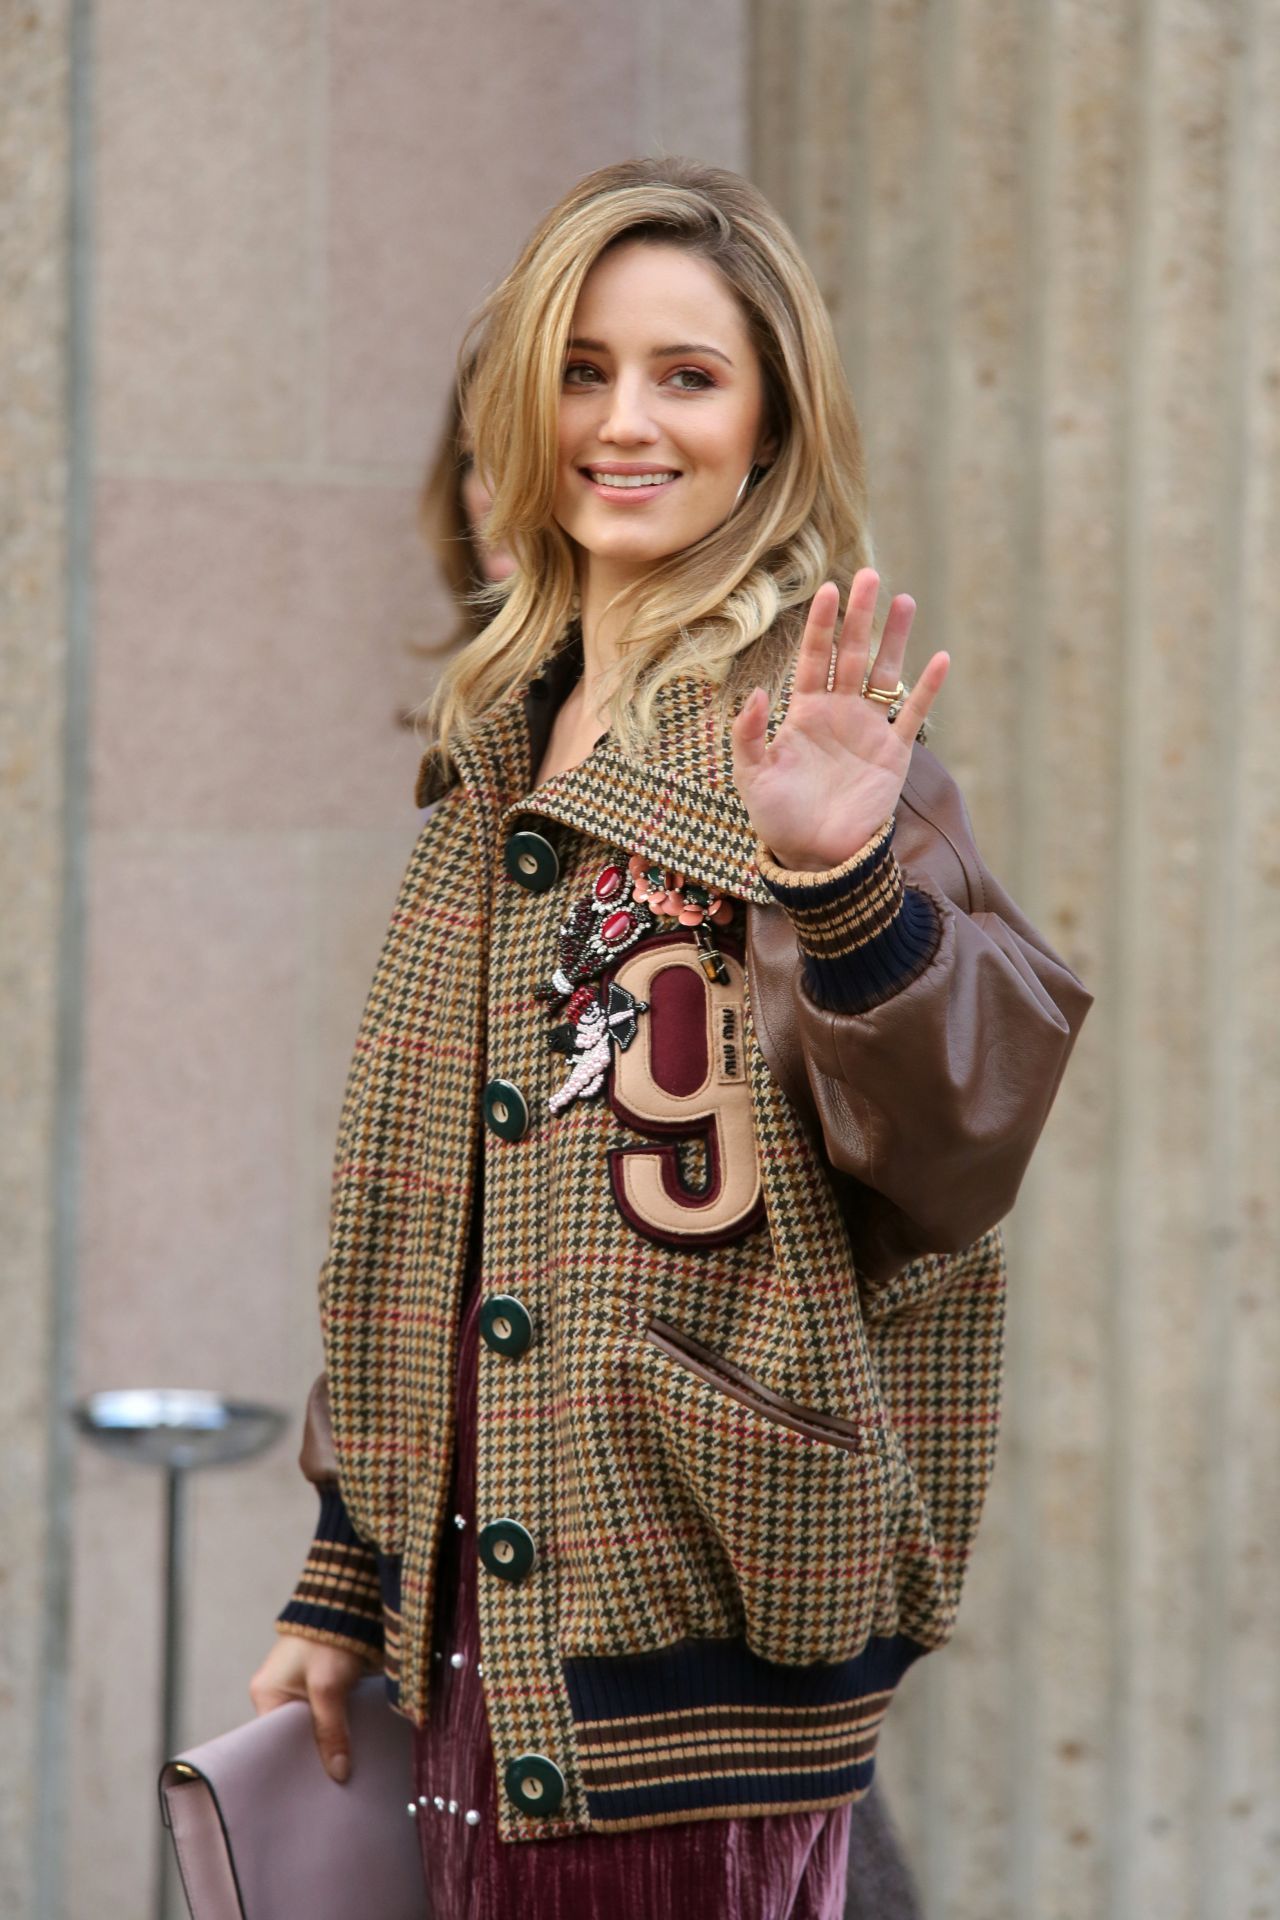 dianna agron 2017 - photo #3